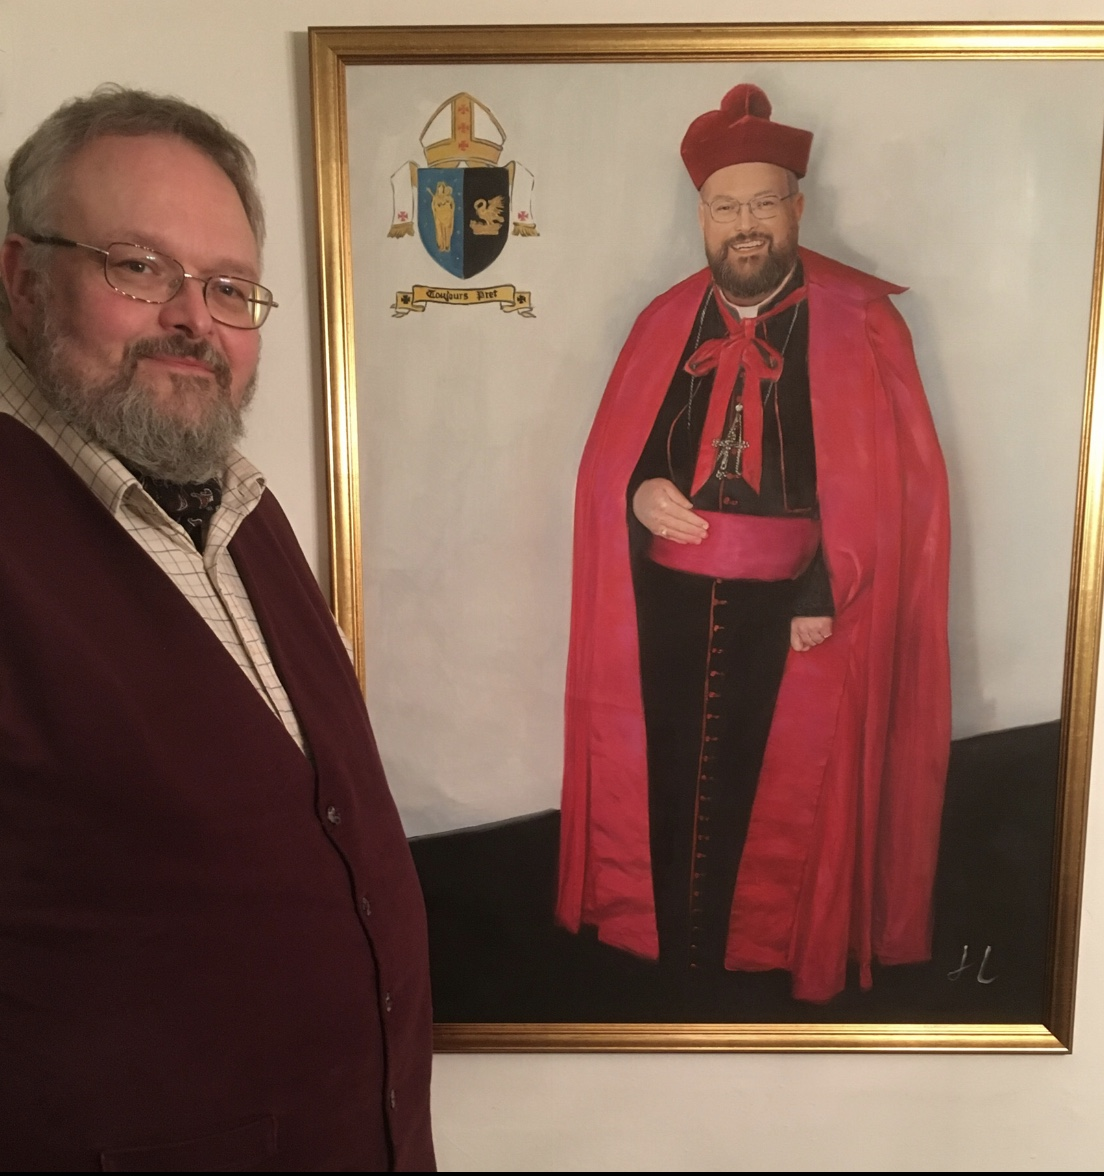 Damien with a portrait of him being consecrated 10 years ago.